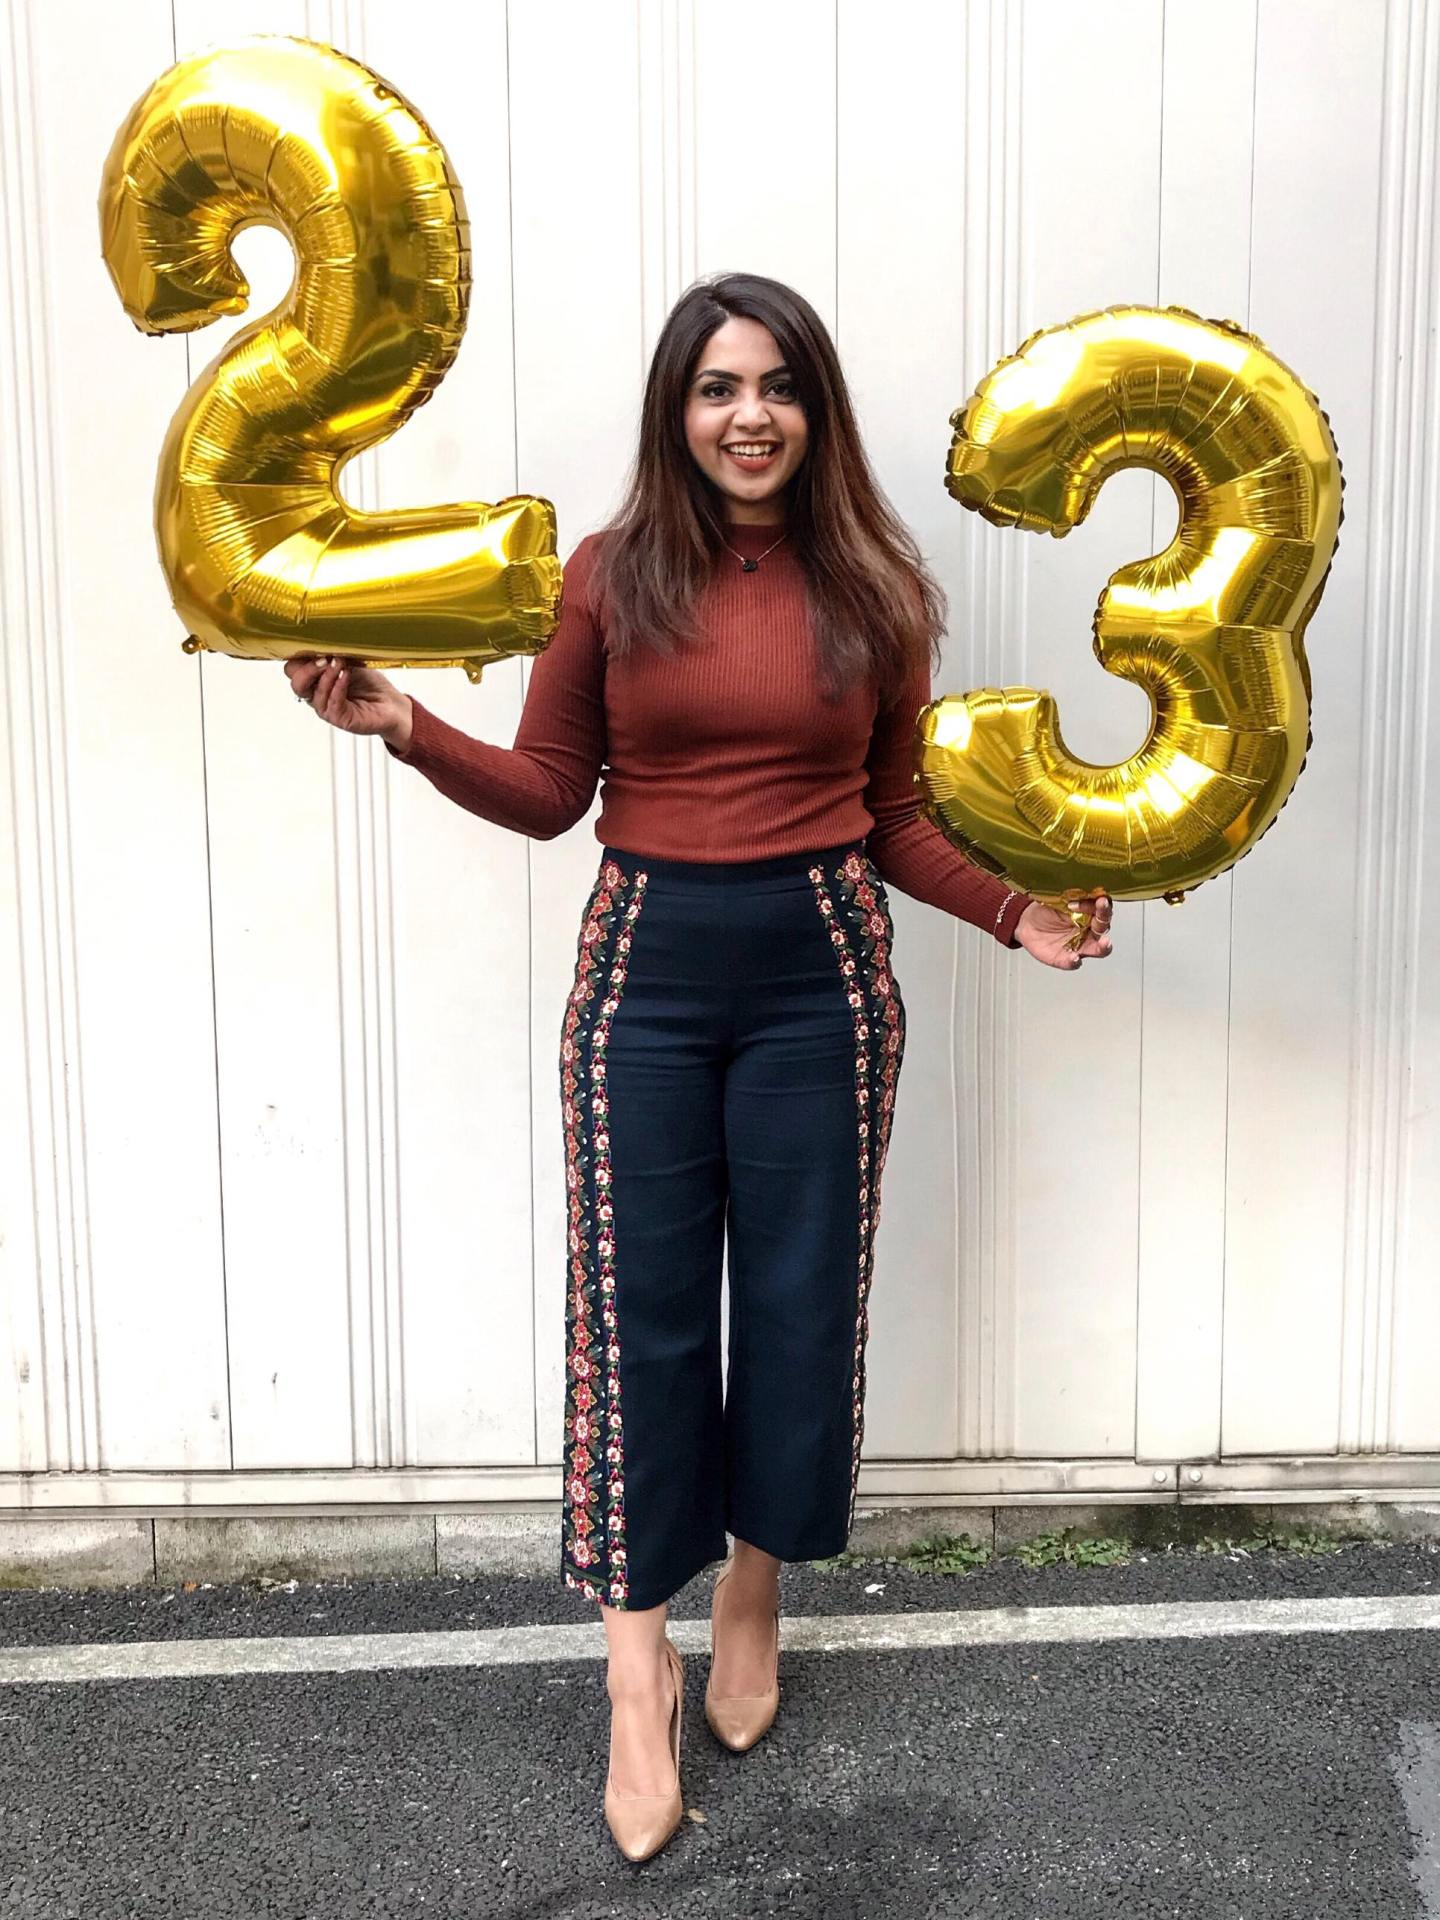 23 Things I've Learned At 23